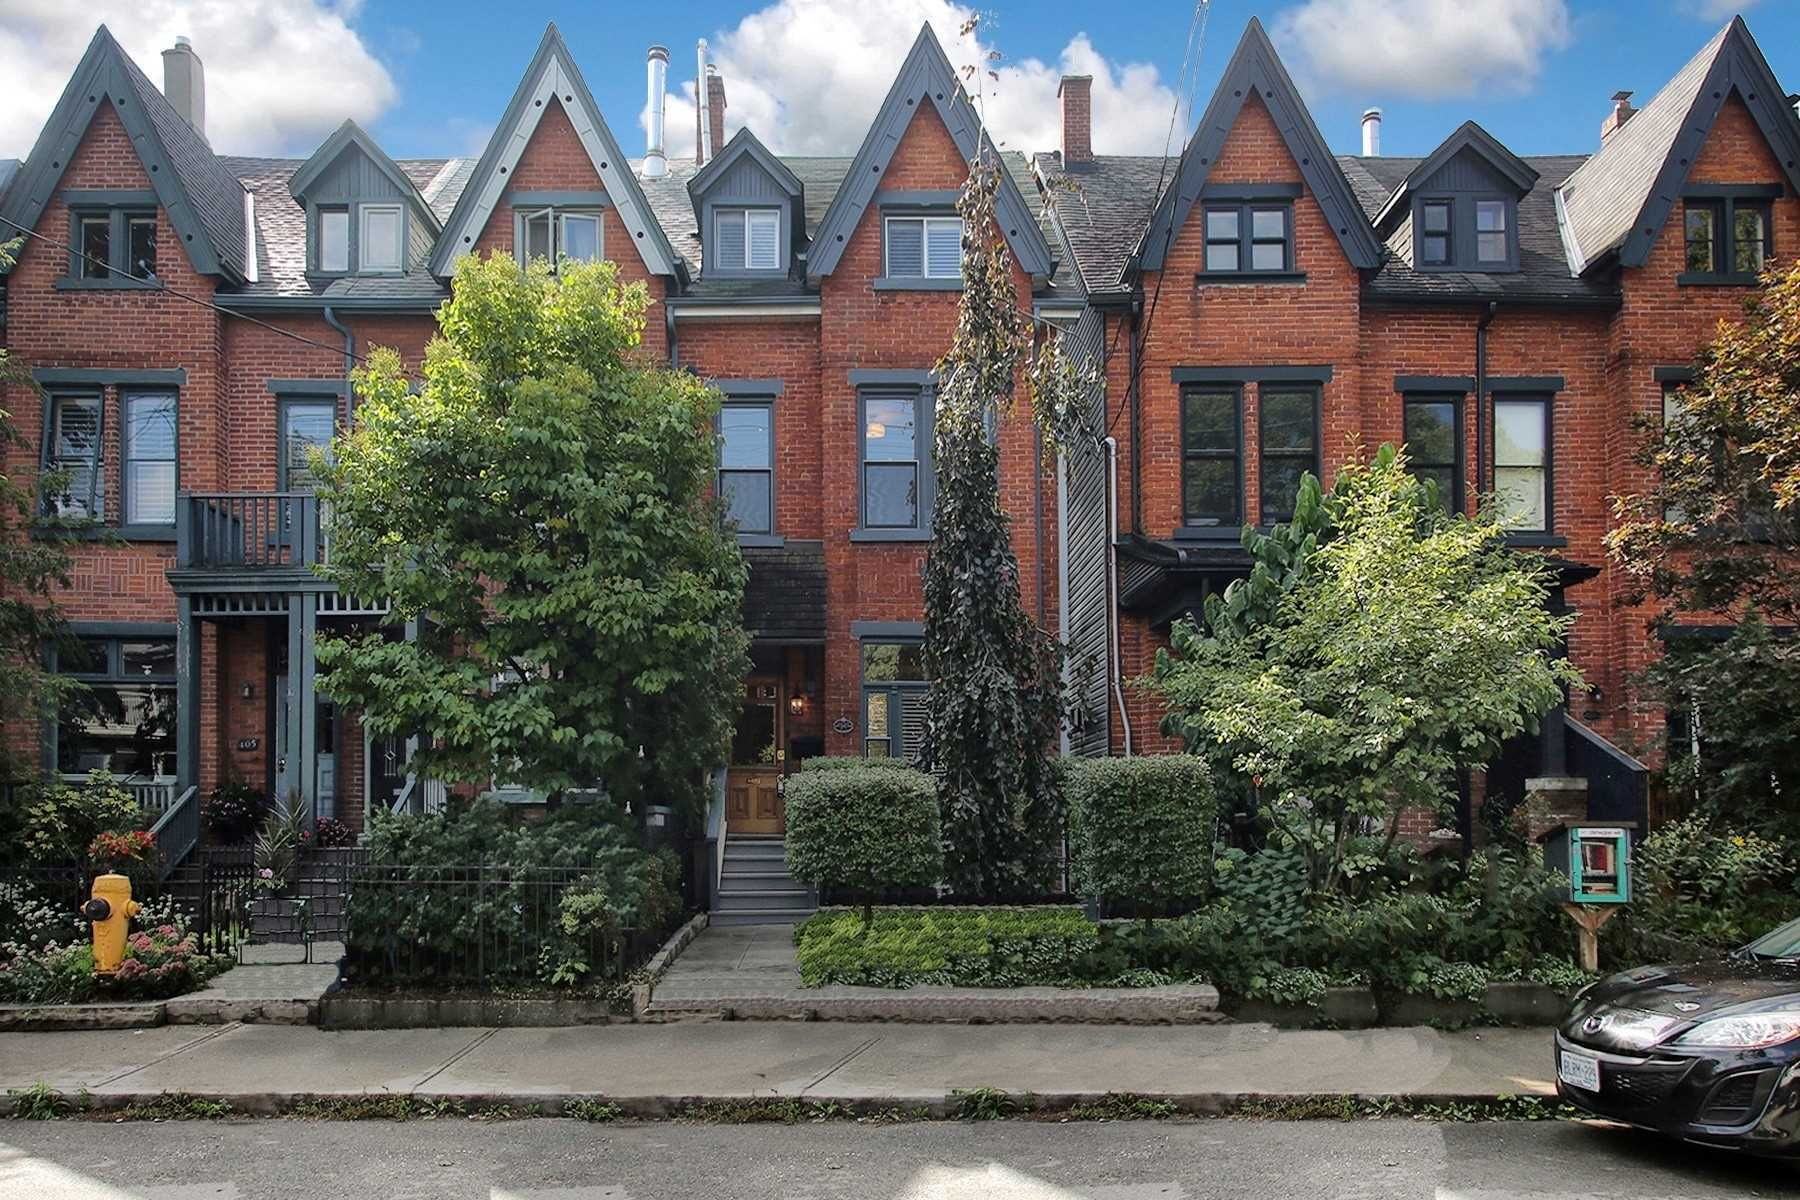 Main Photo: 401 E Wellesley Street in Toronto: Cabbagetown-South St. James Town House (3-Storey) for sale (Toronto C08)  : MLS®# C5364519